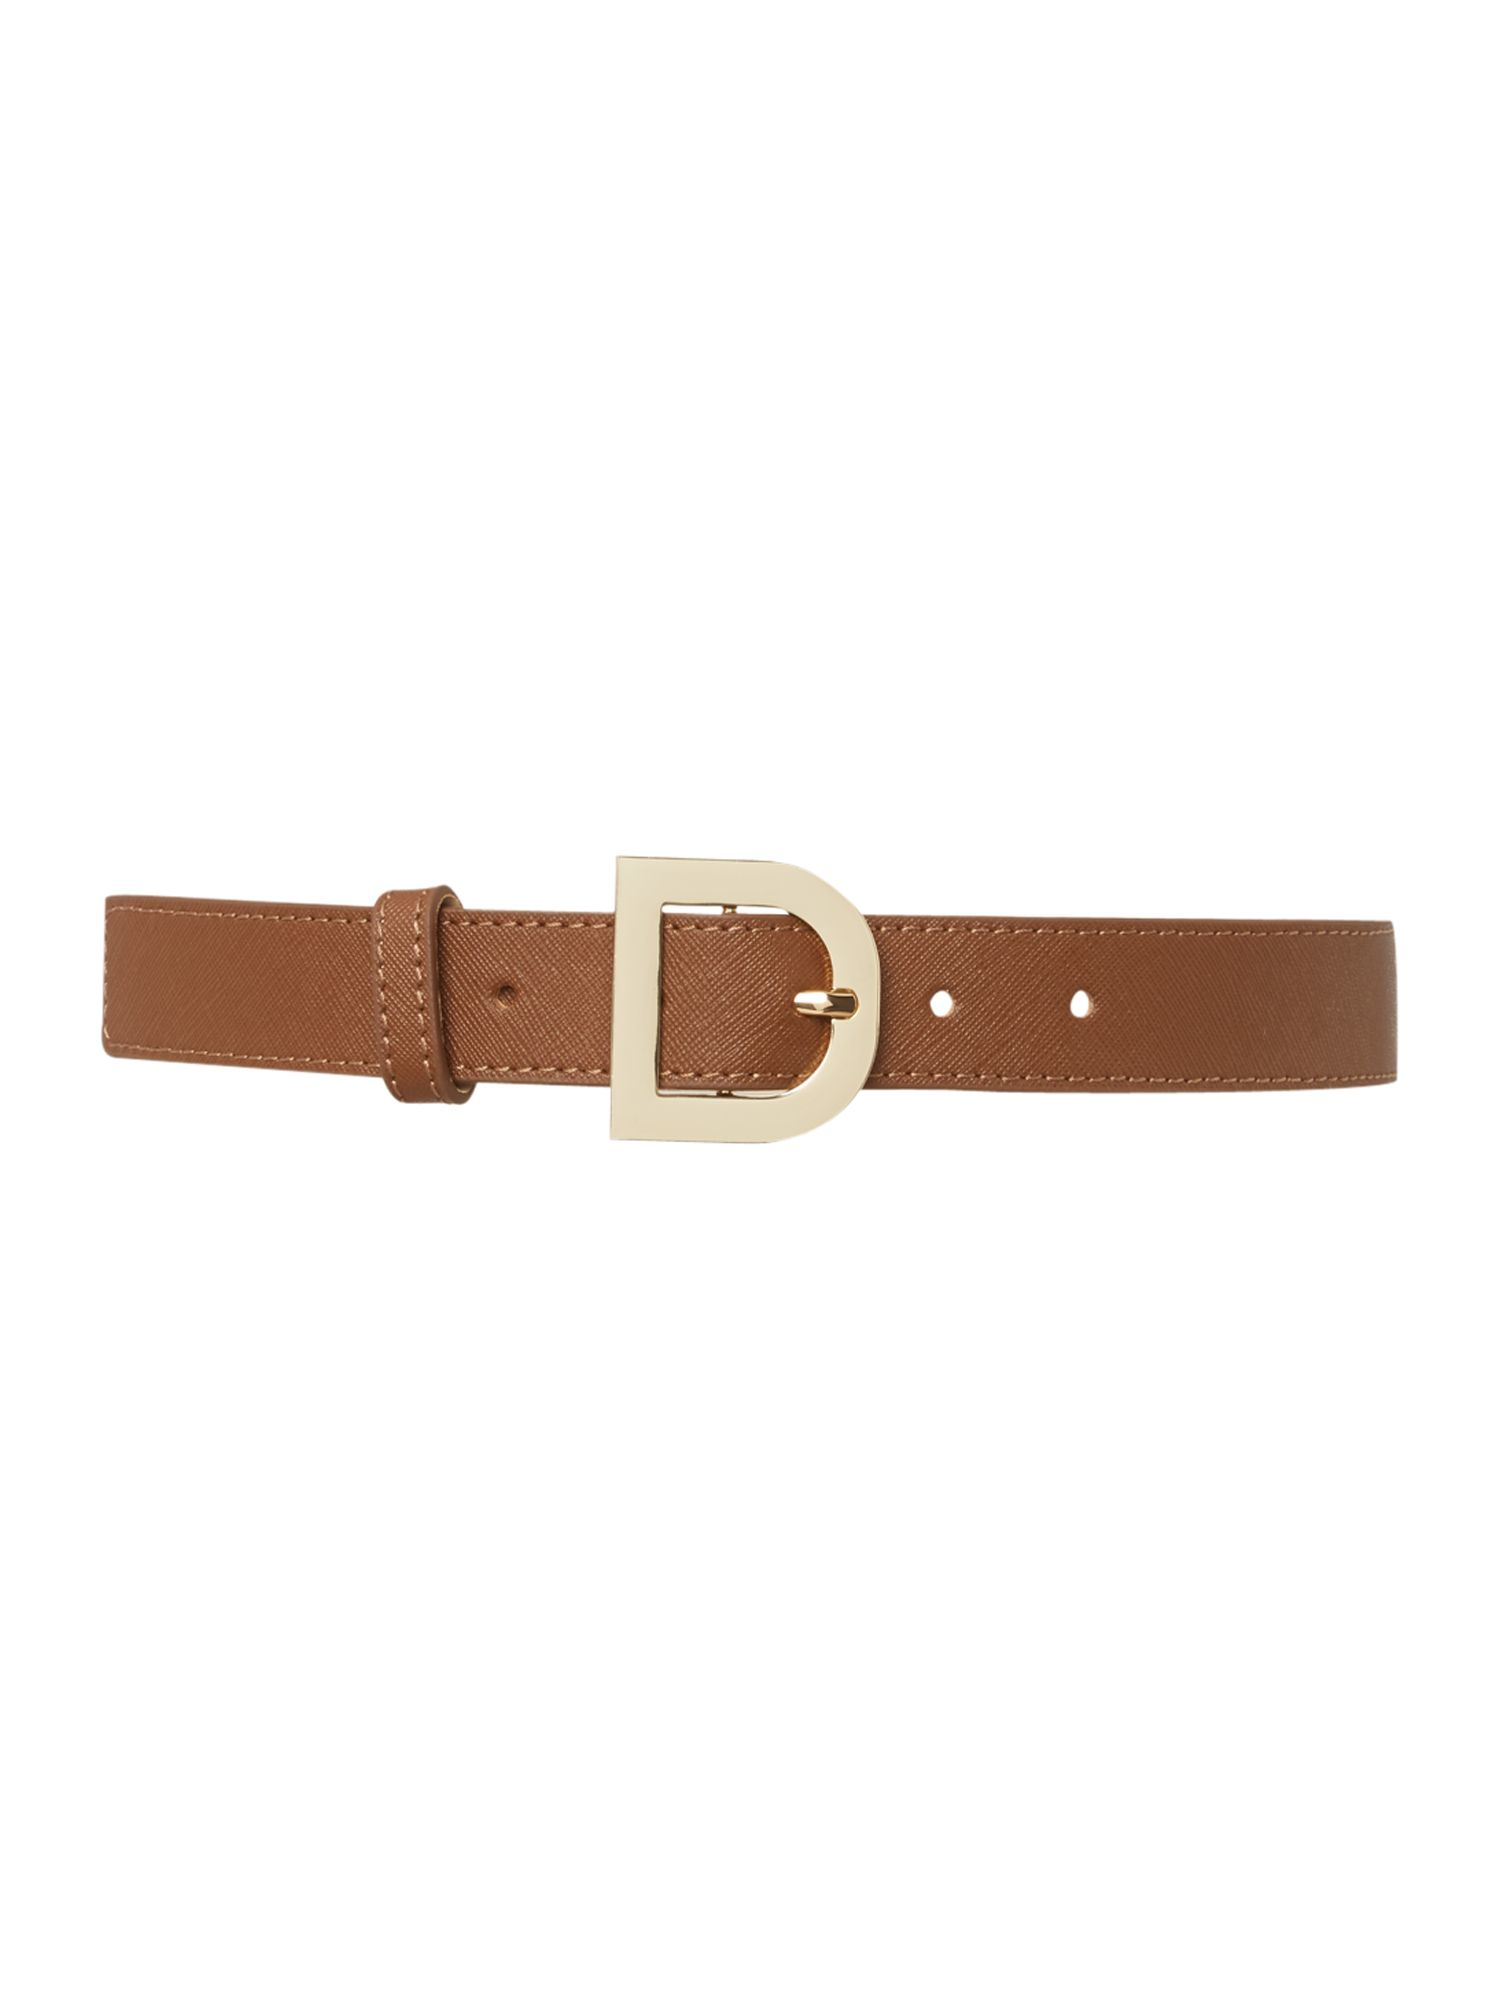 dkny saffiano leather brown belt with d ring buckle in